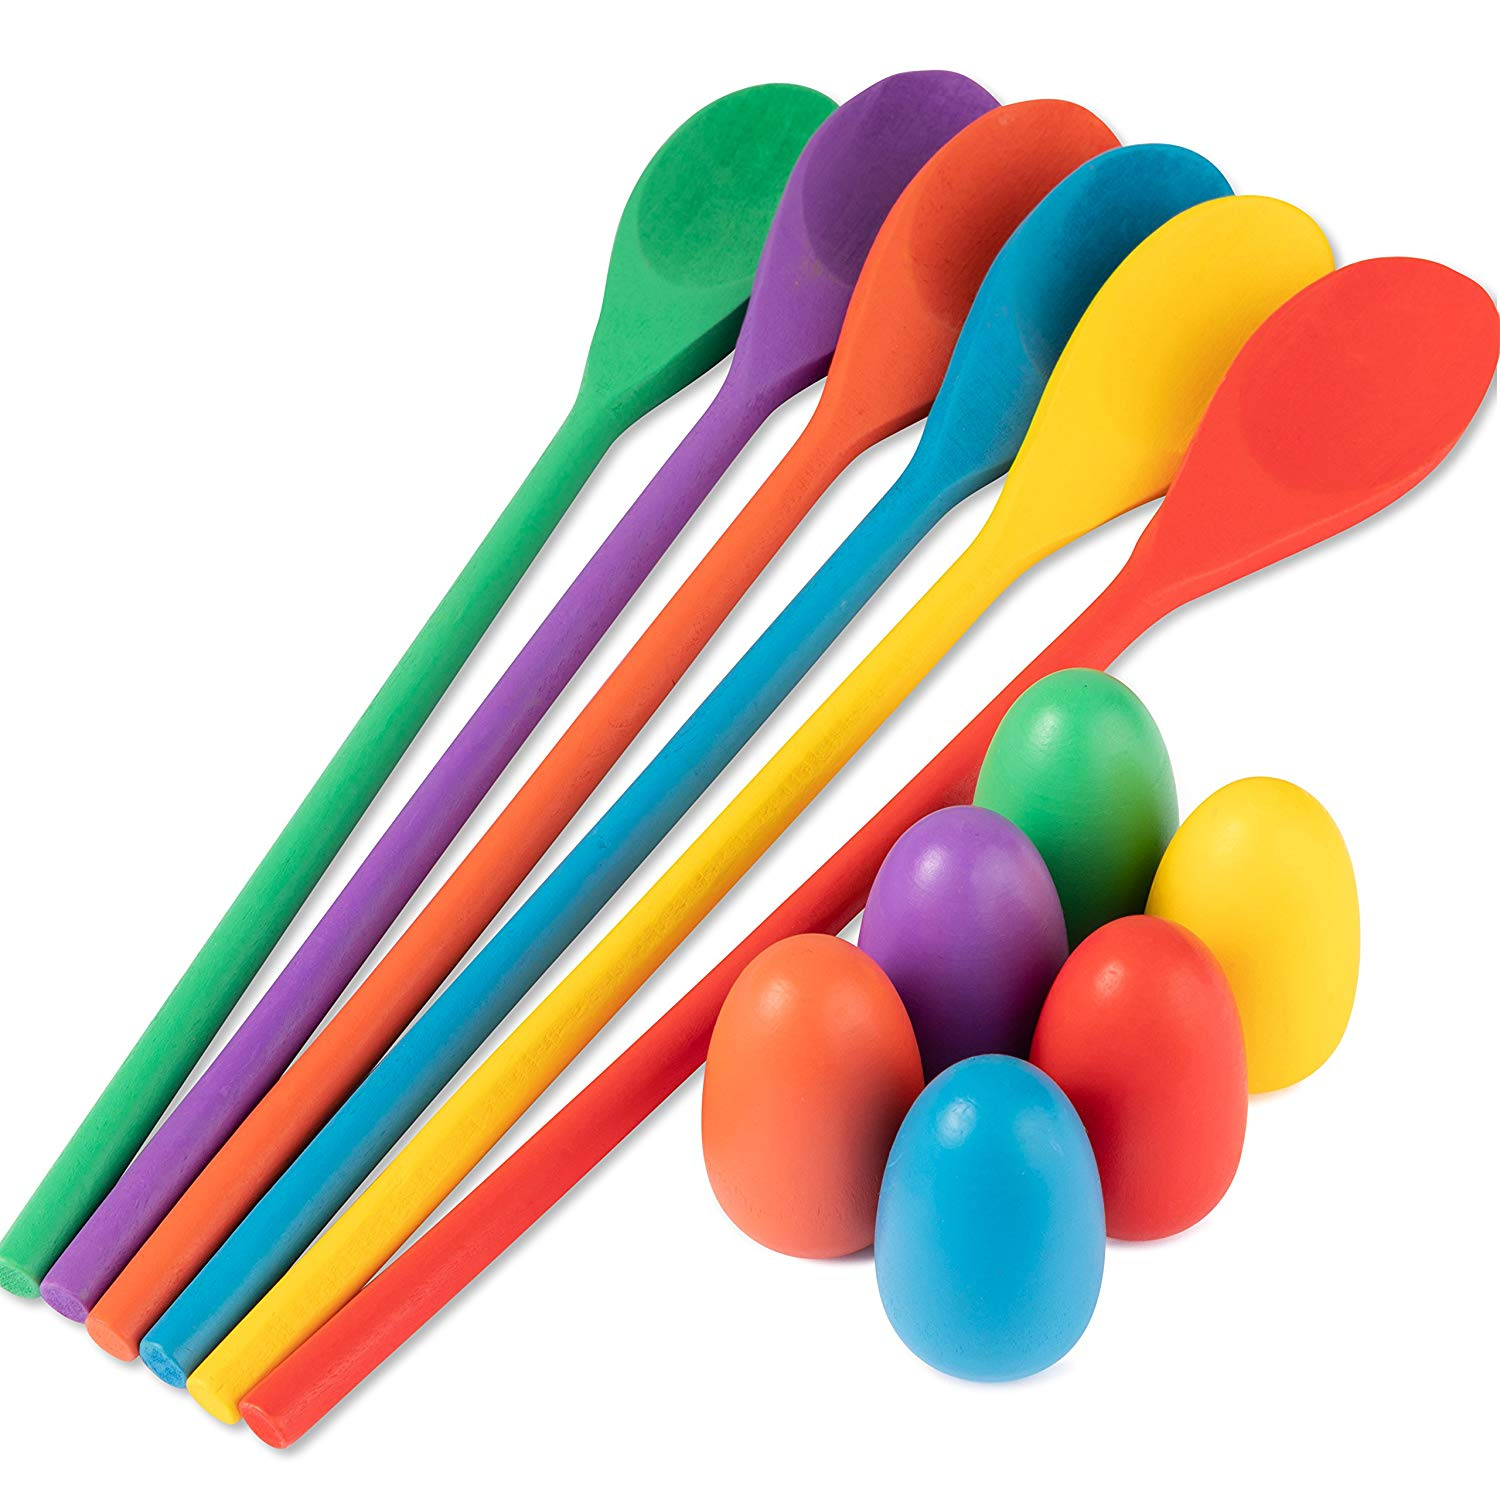 6 Sets of Wooden Spoons /& Eggs with Cute F... iBaseToy Egg and Spoon Race Game